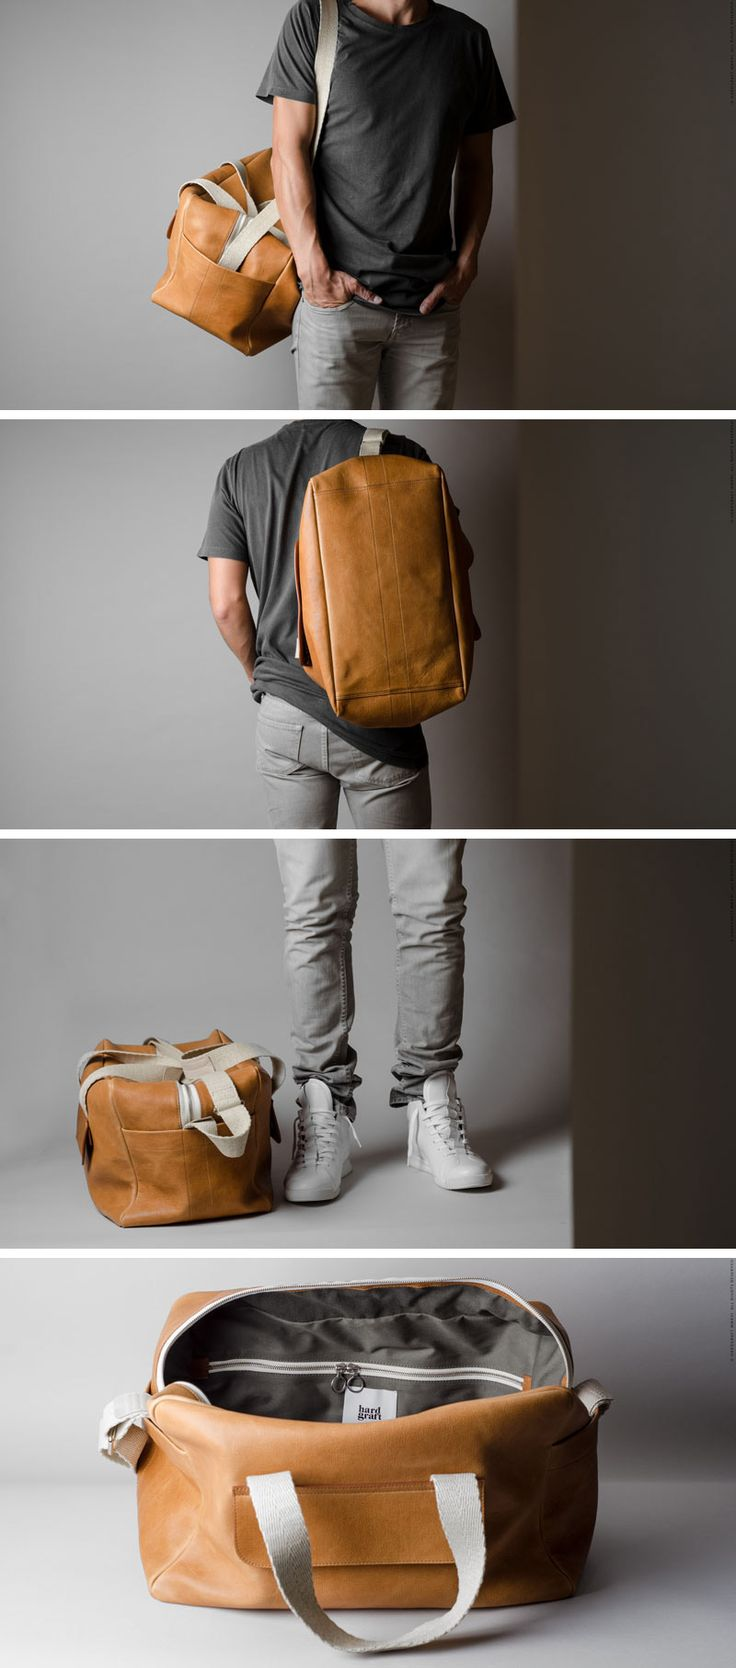 This modern, light tan leather duffel bag, adds a bit of color to your travels while still keeping things neutral and practical.